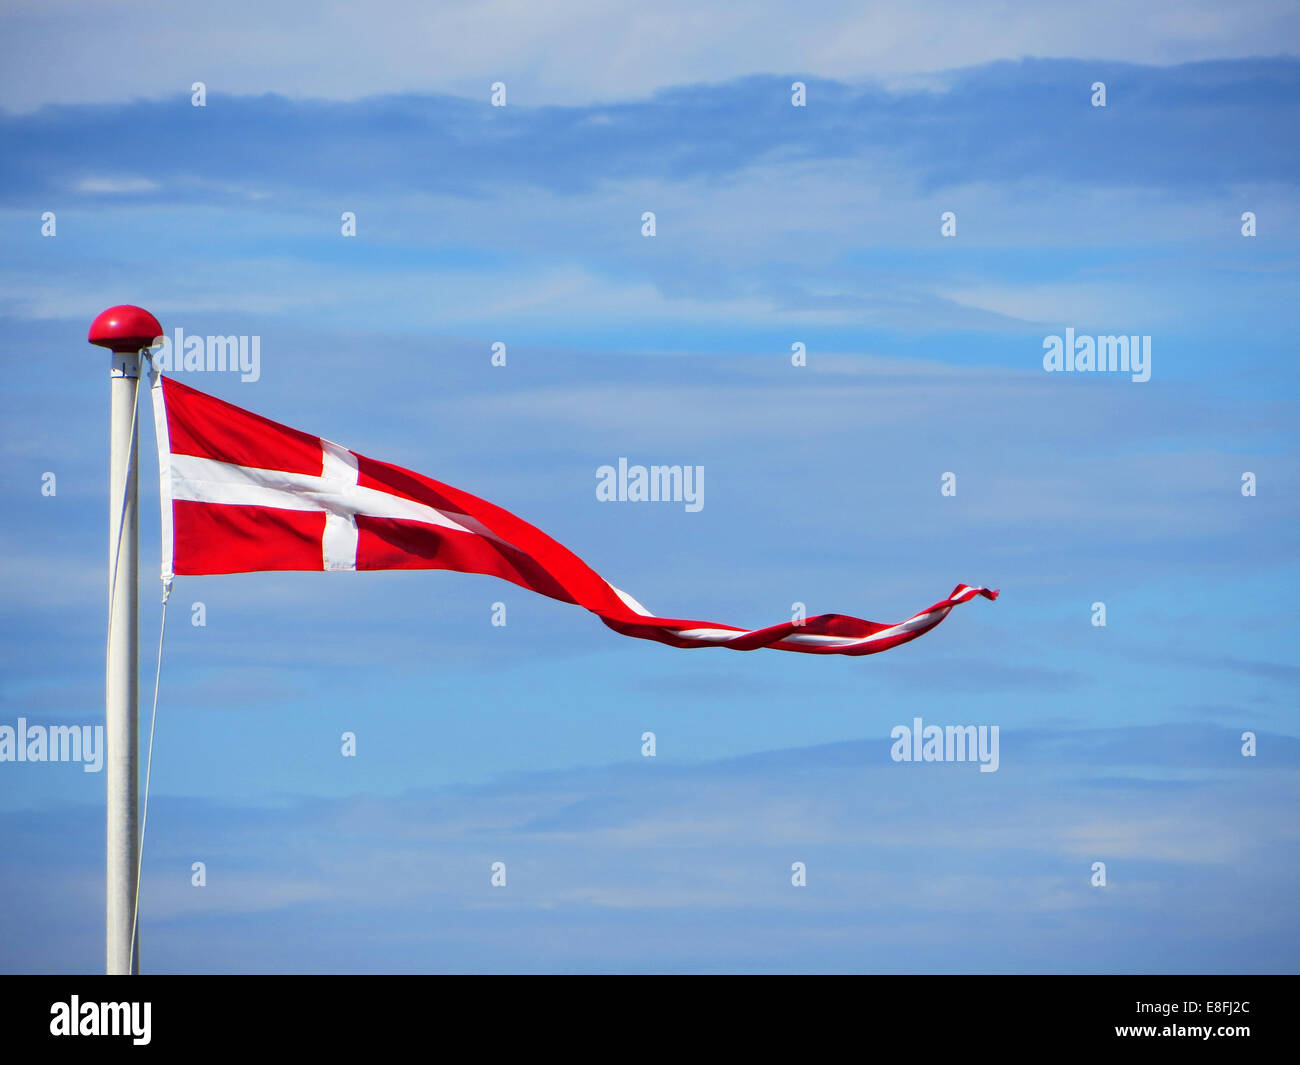 Danish pennant flag against partly cloudy sky, Denmark - Stock Image